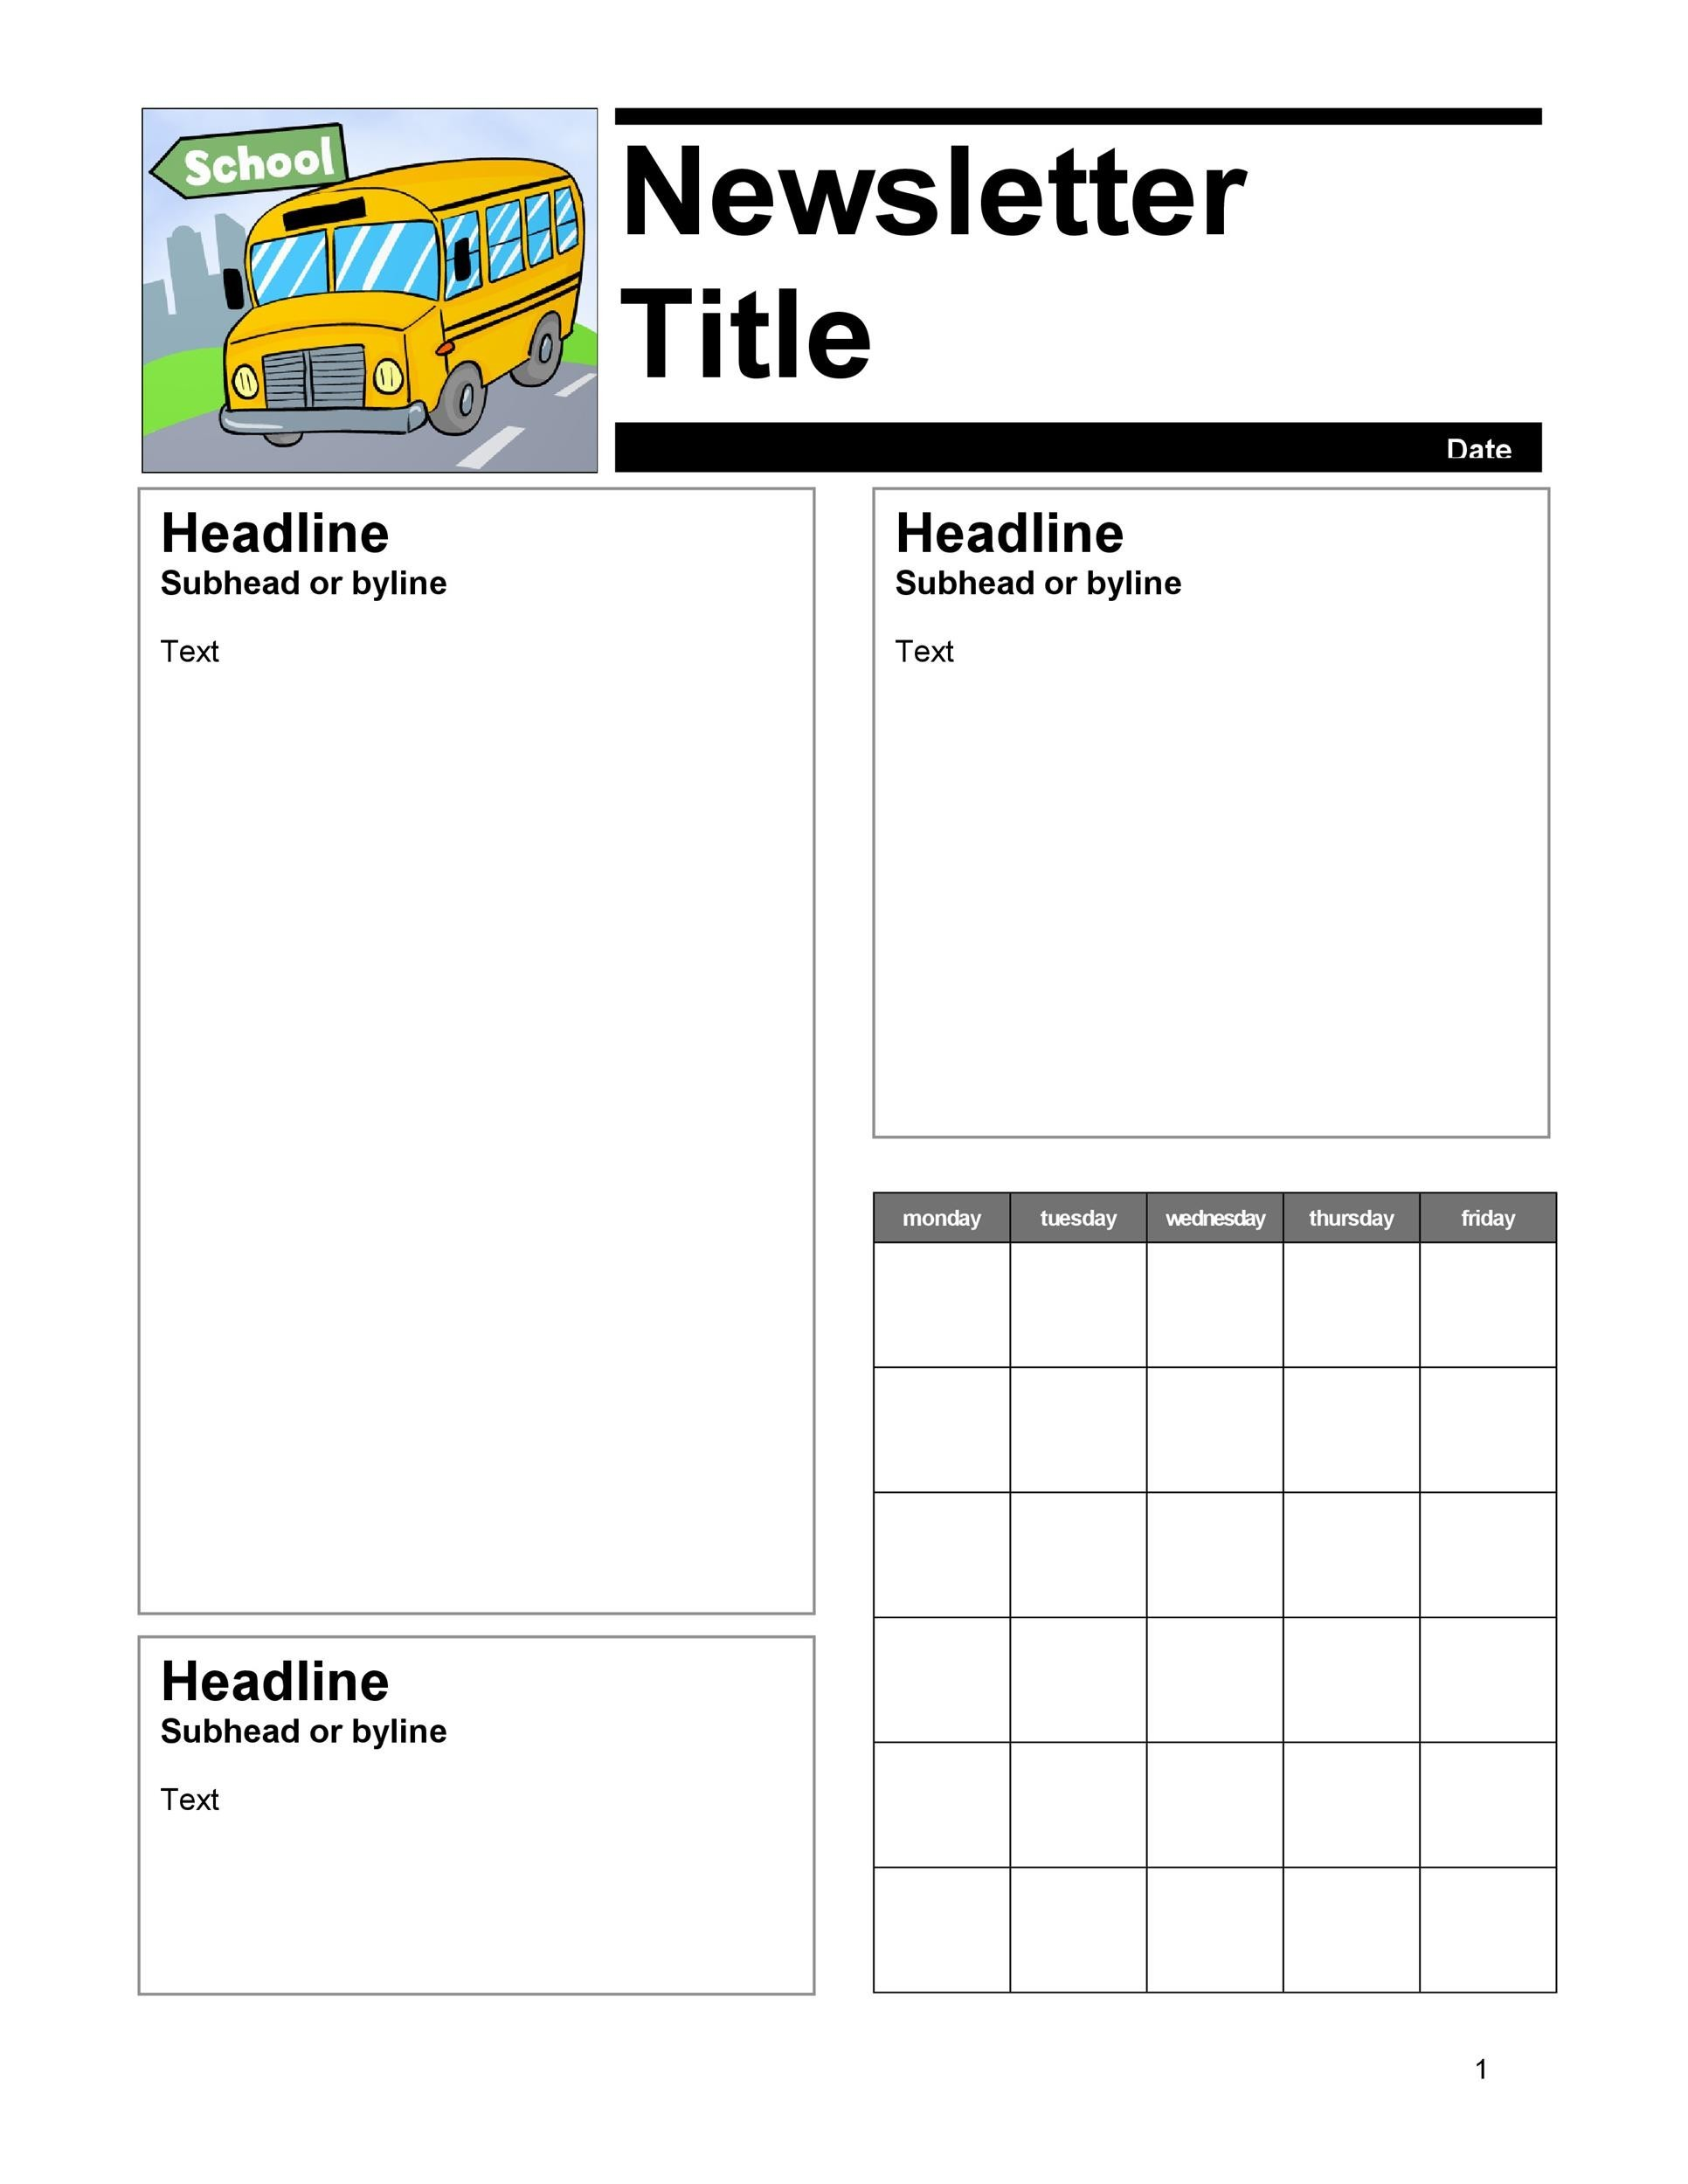 50 FREE Newsletter Templates for Work School and Classroom – Example of Newsletter Templates